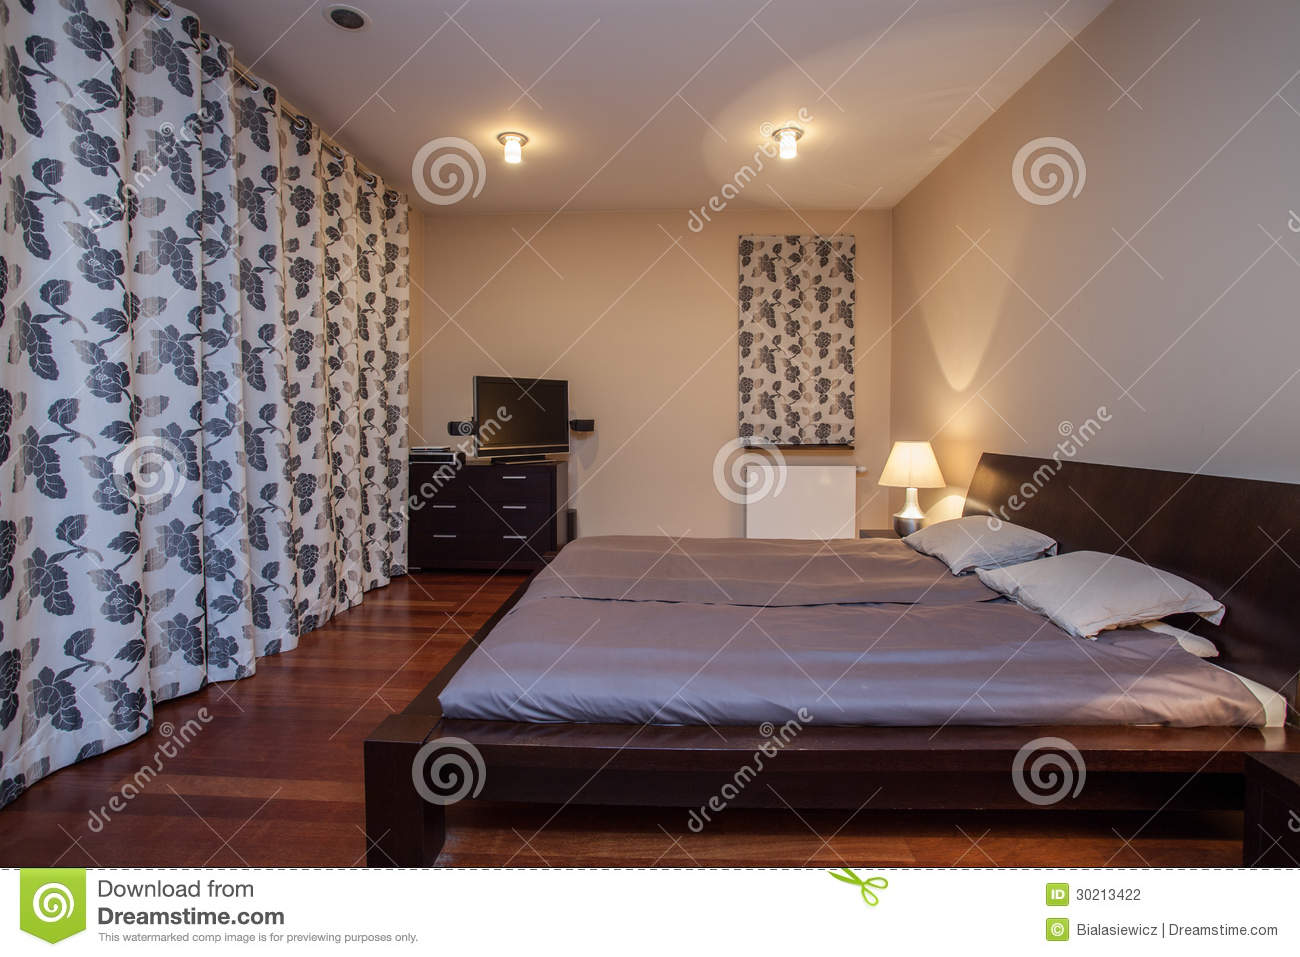 Maison de travertin chambre coucher luxueuse for Photo de chambre a coucher